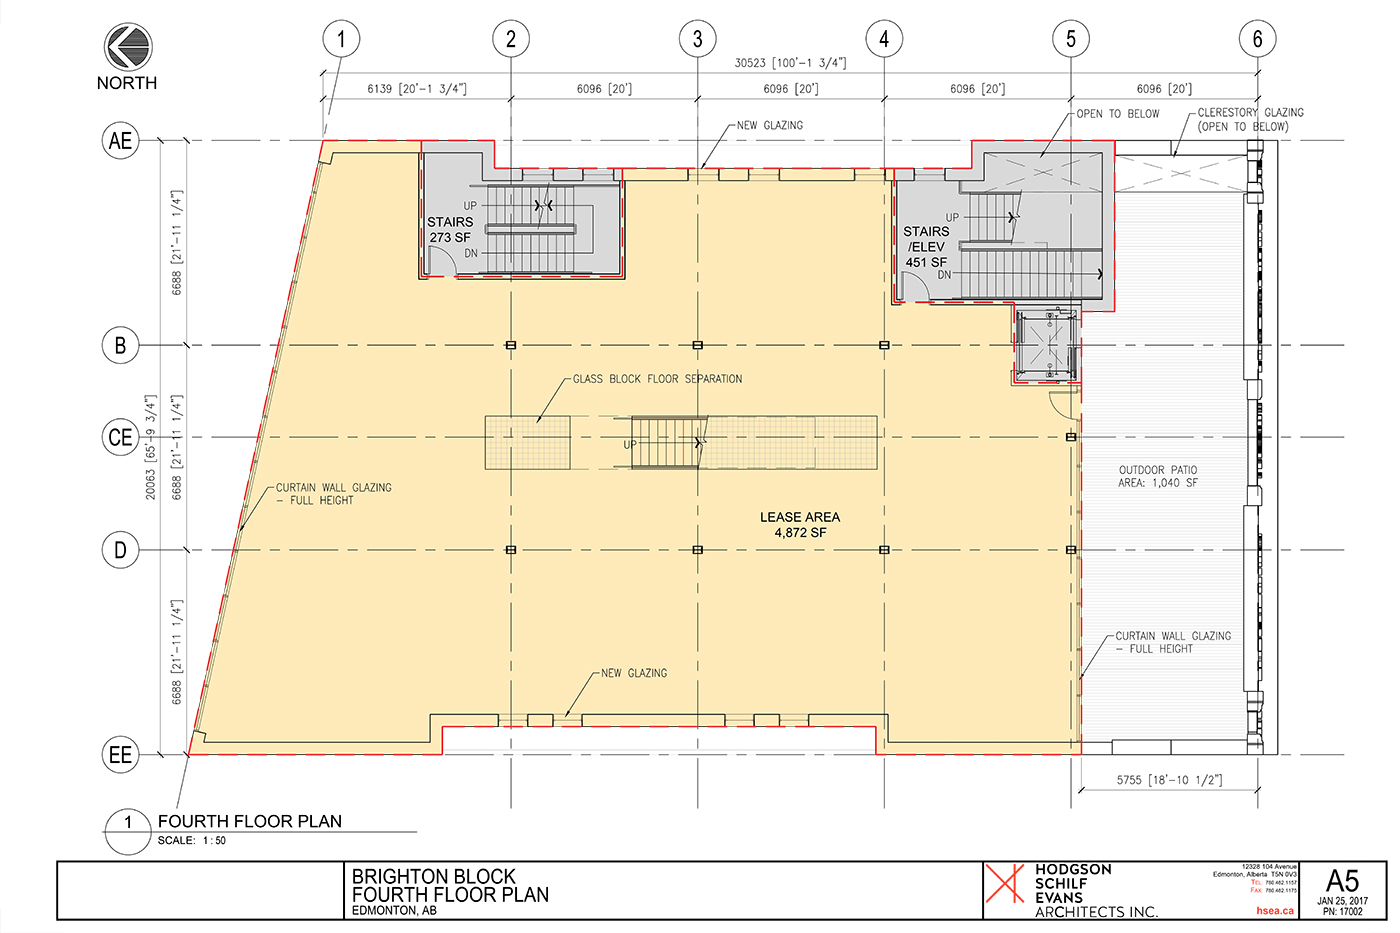 Brighton-Block-Concept-Plans-0125-4 copy.jpg